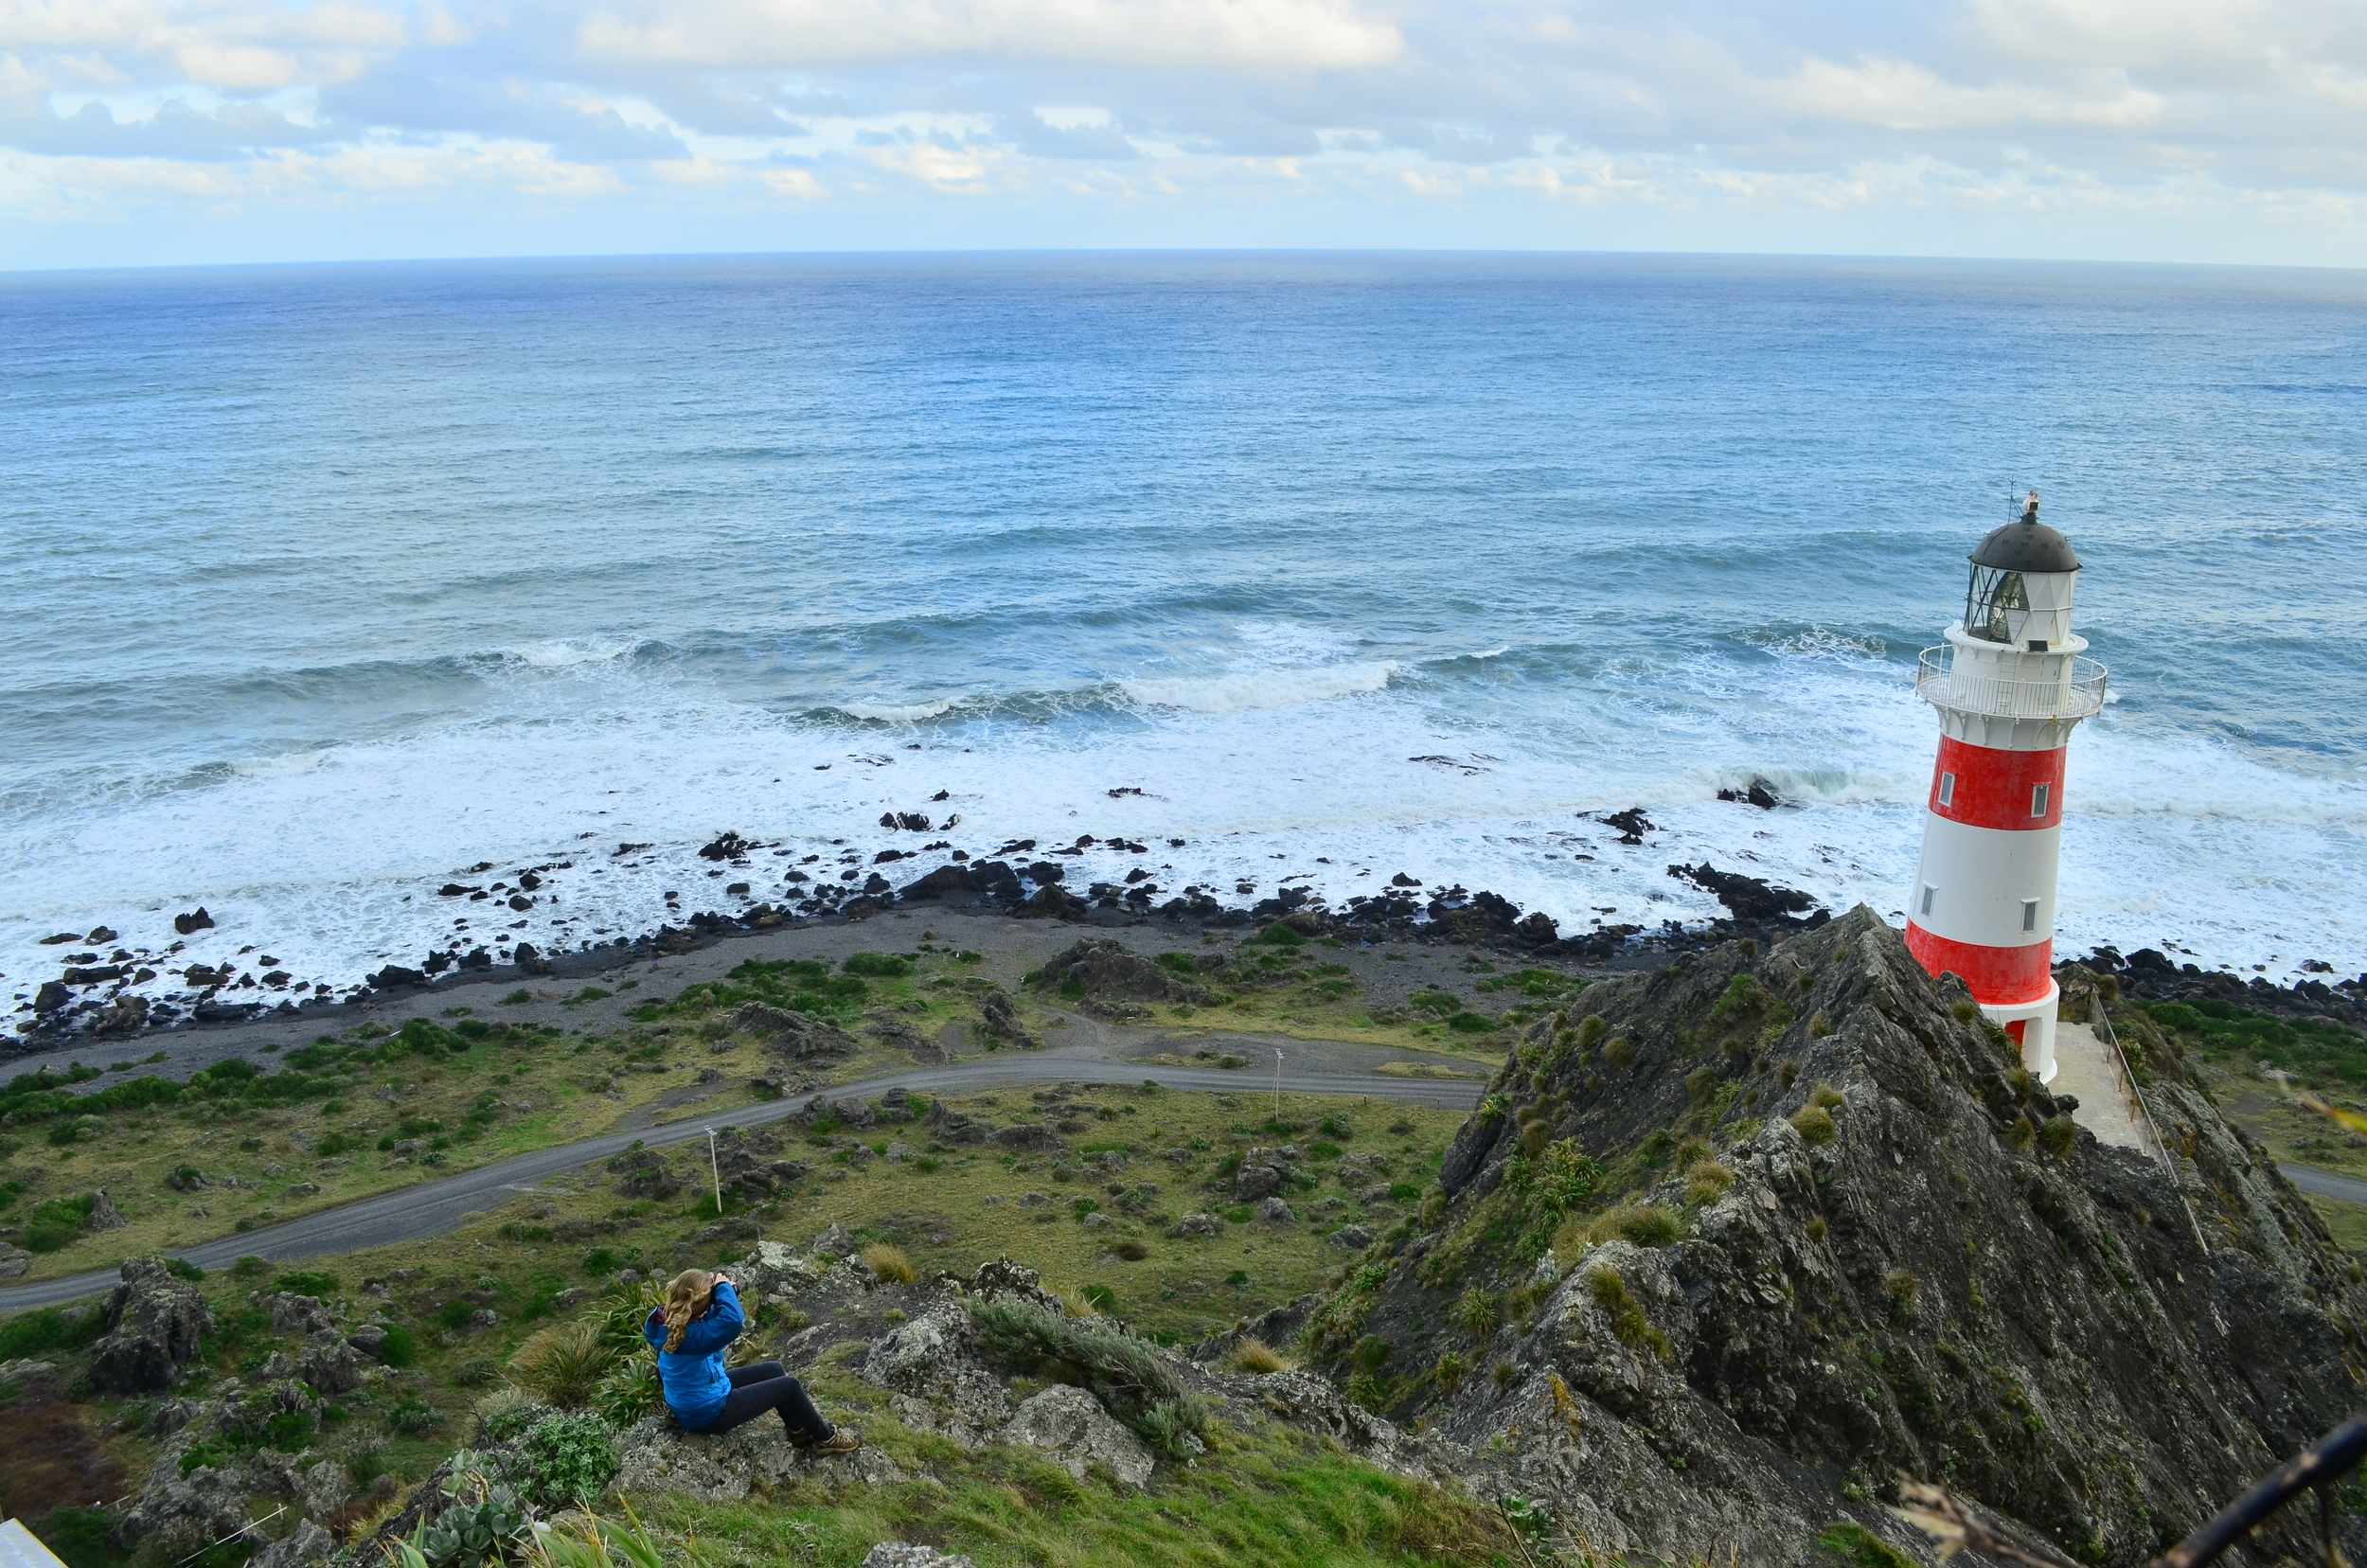 [13] Shots of the Cape Palliser Lighthouse, North Island.